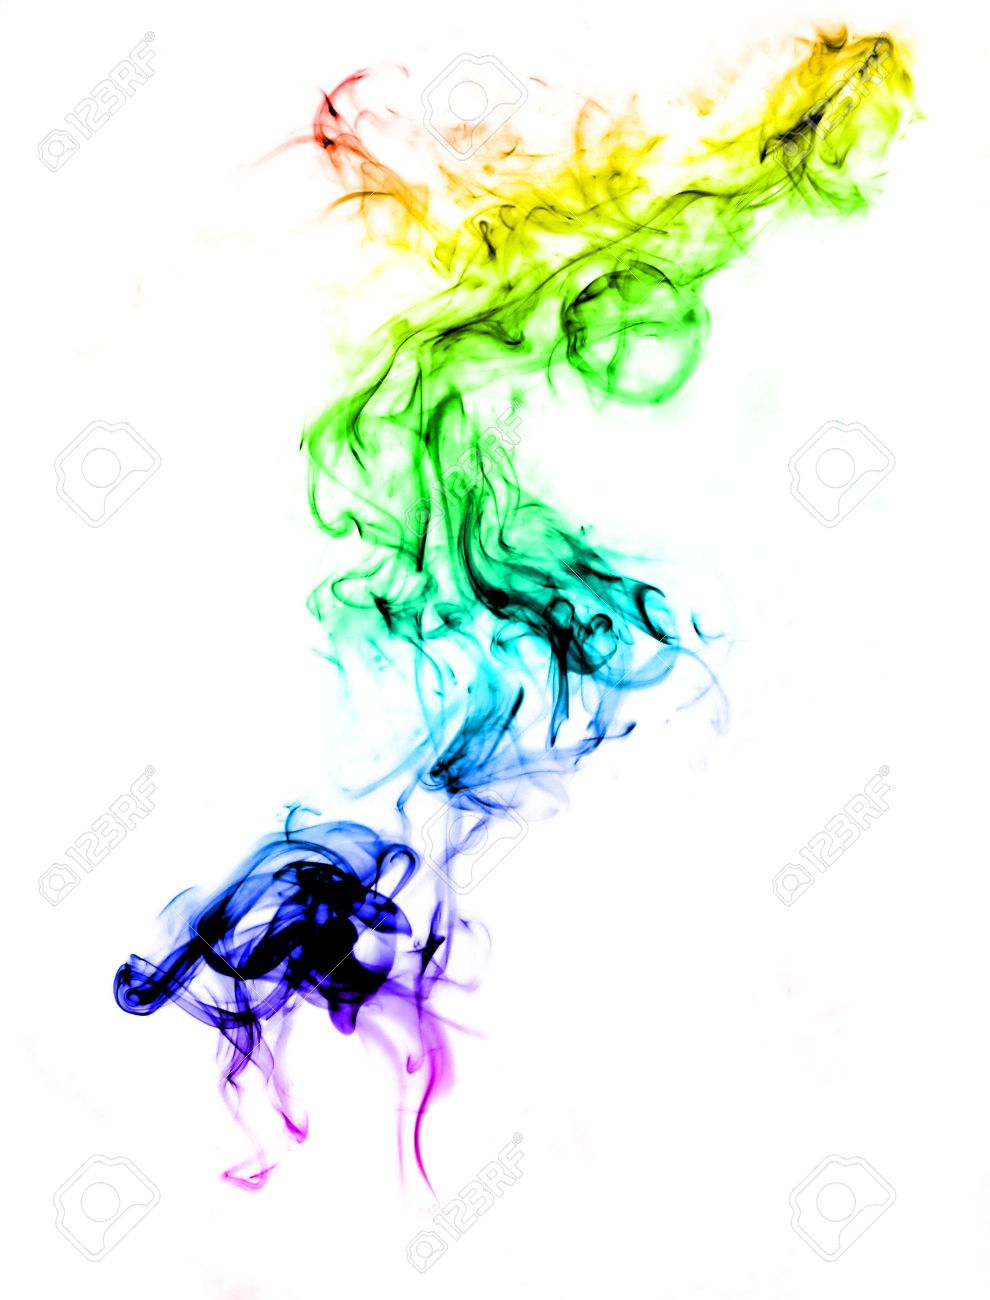 Colorful smoke abstract over white background Stock Photo - 5027716